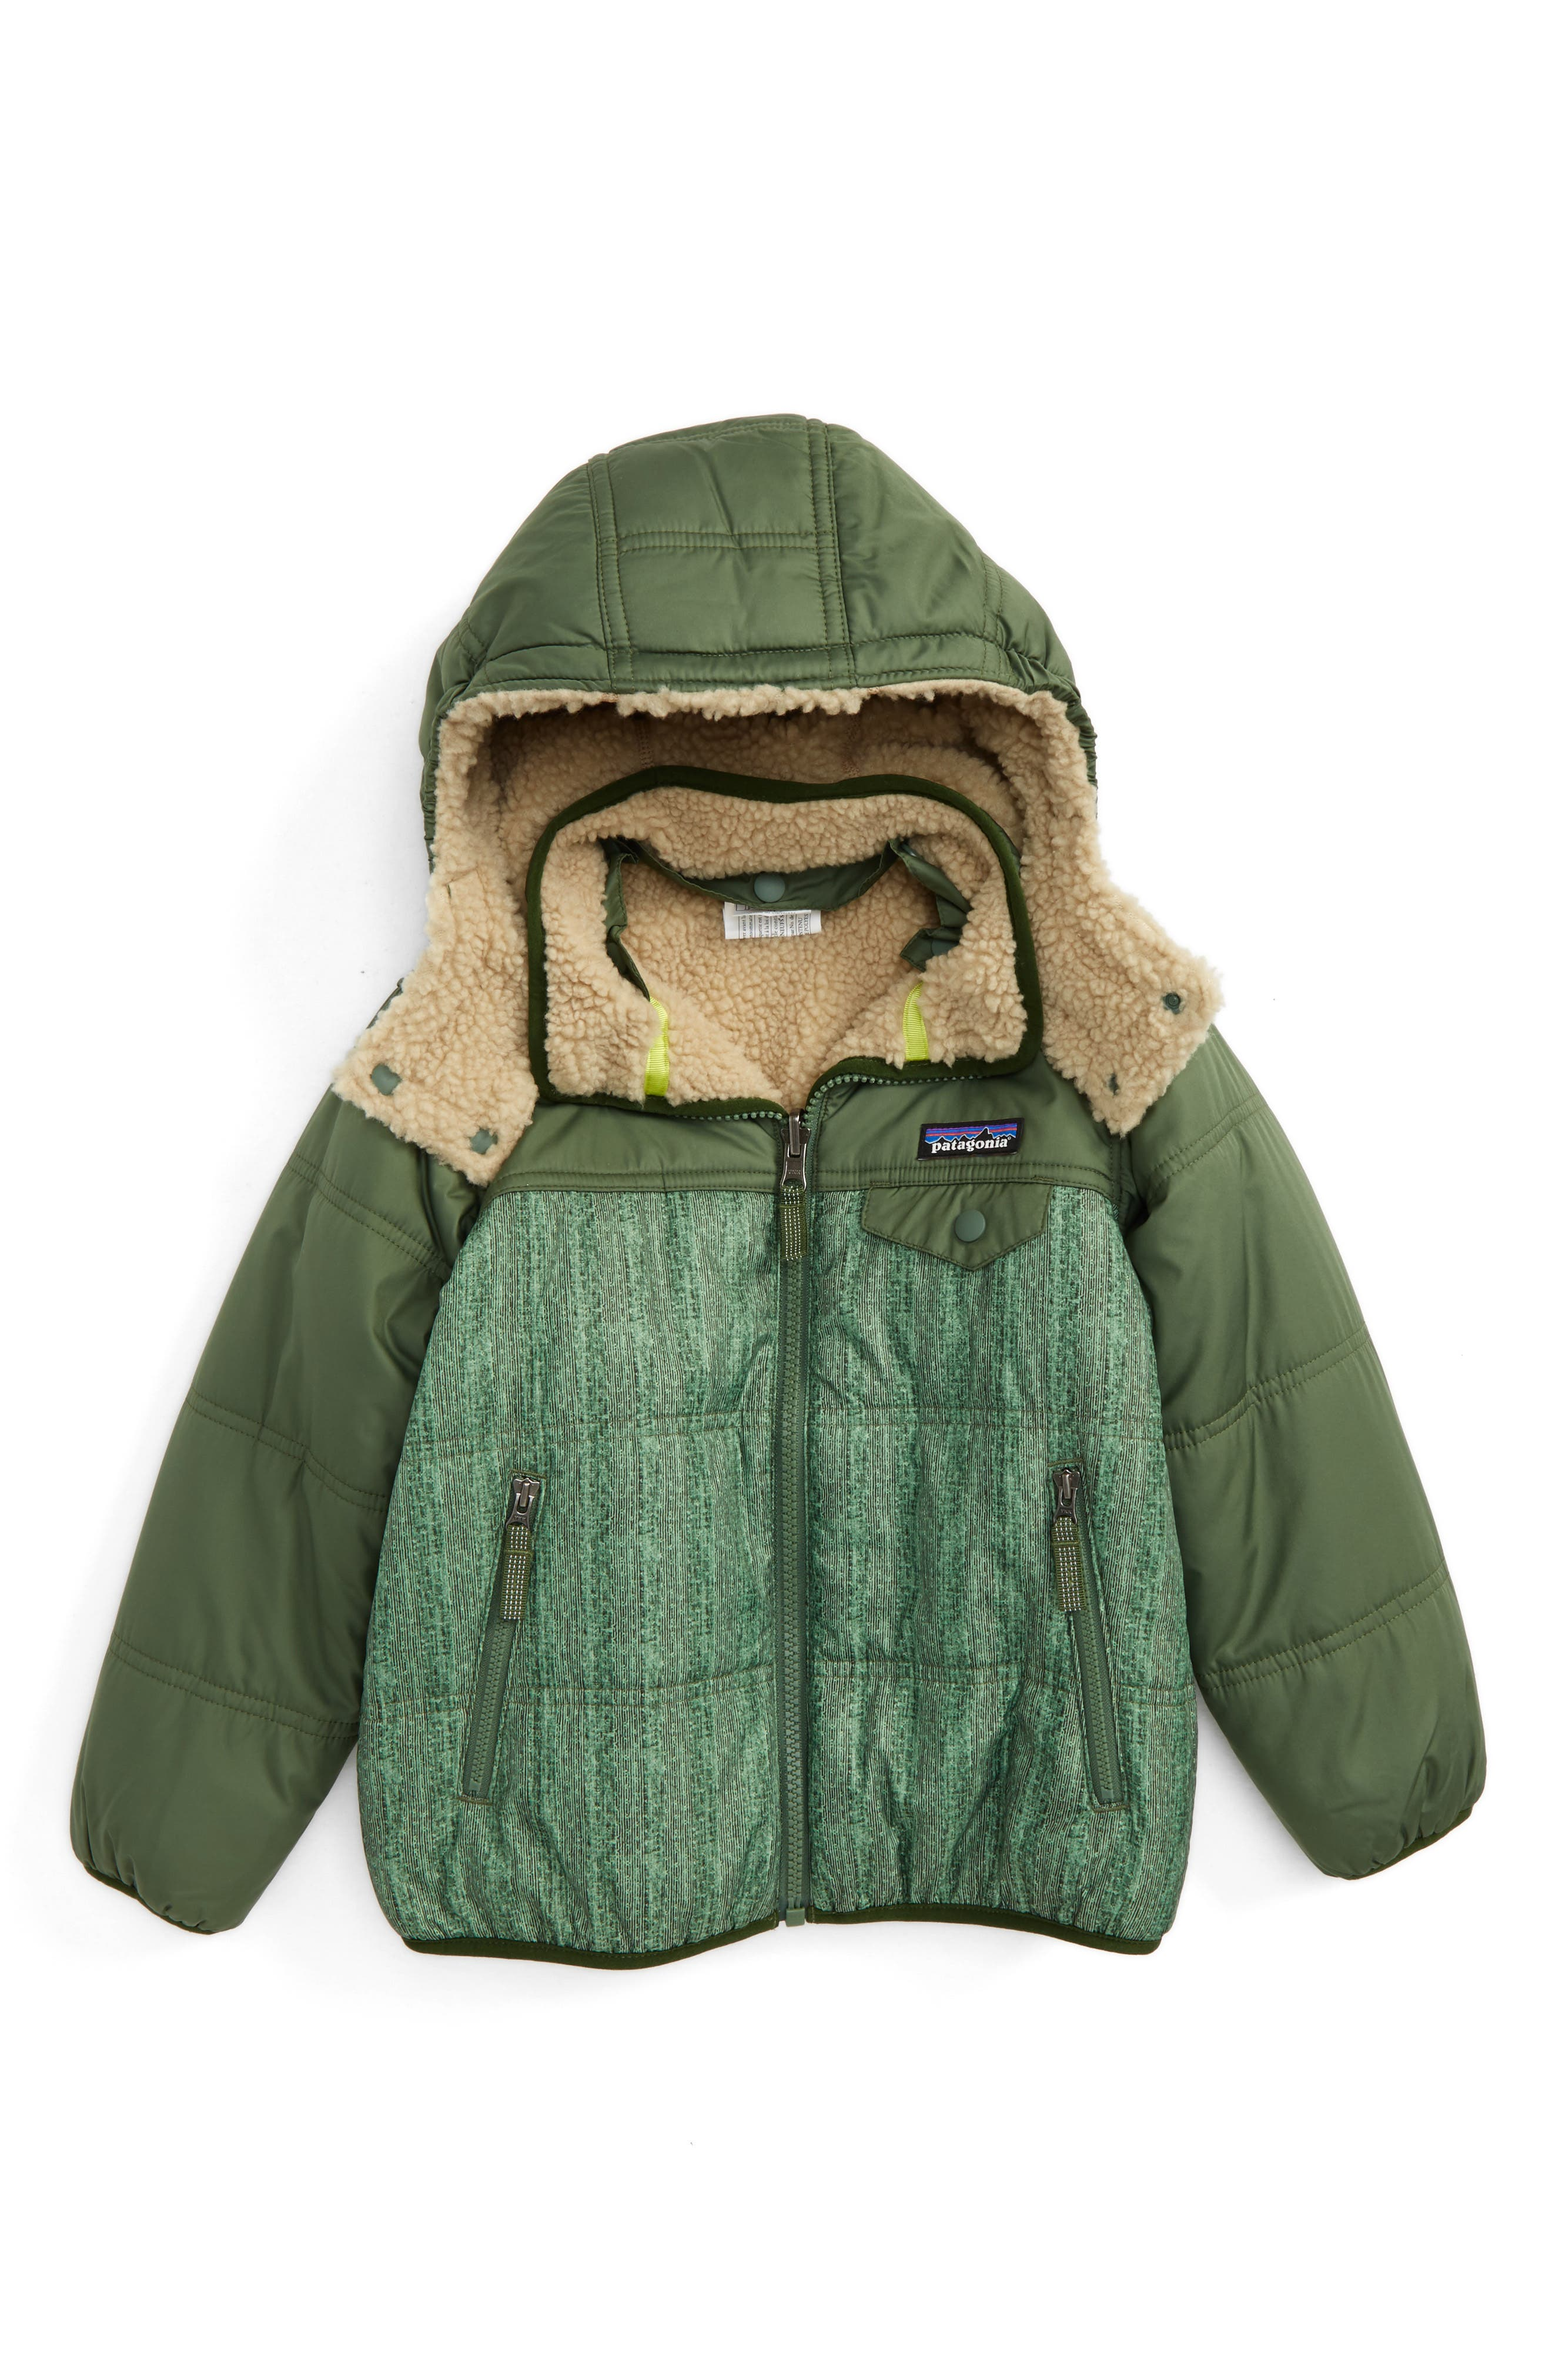 Main Image - Patagonia 'Tribbles' Reversible Water Resistant Snow Jacket(Toddler Boys & Little Boys)